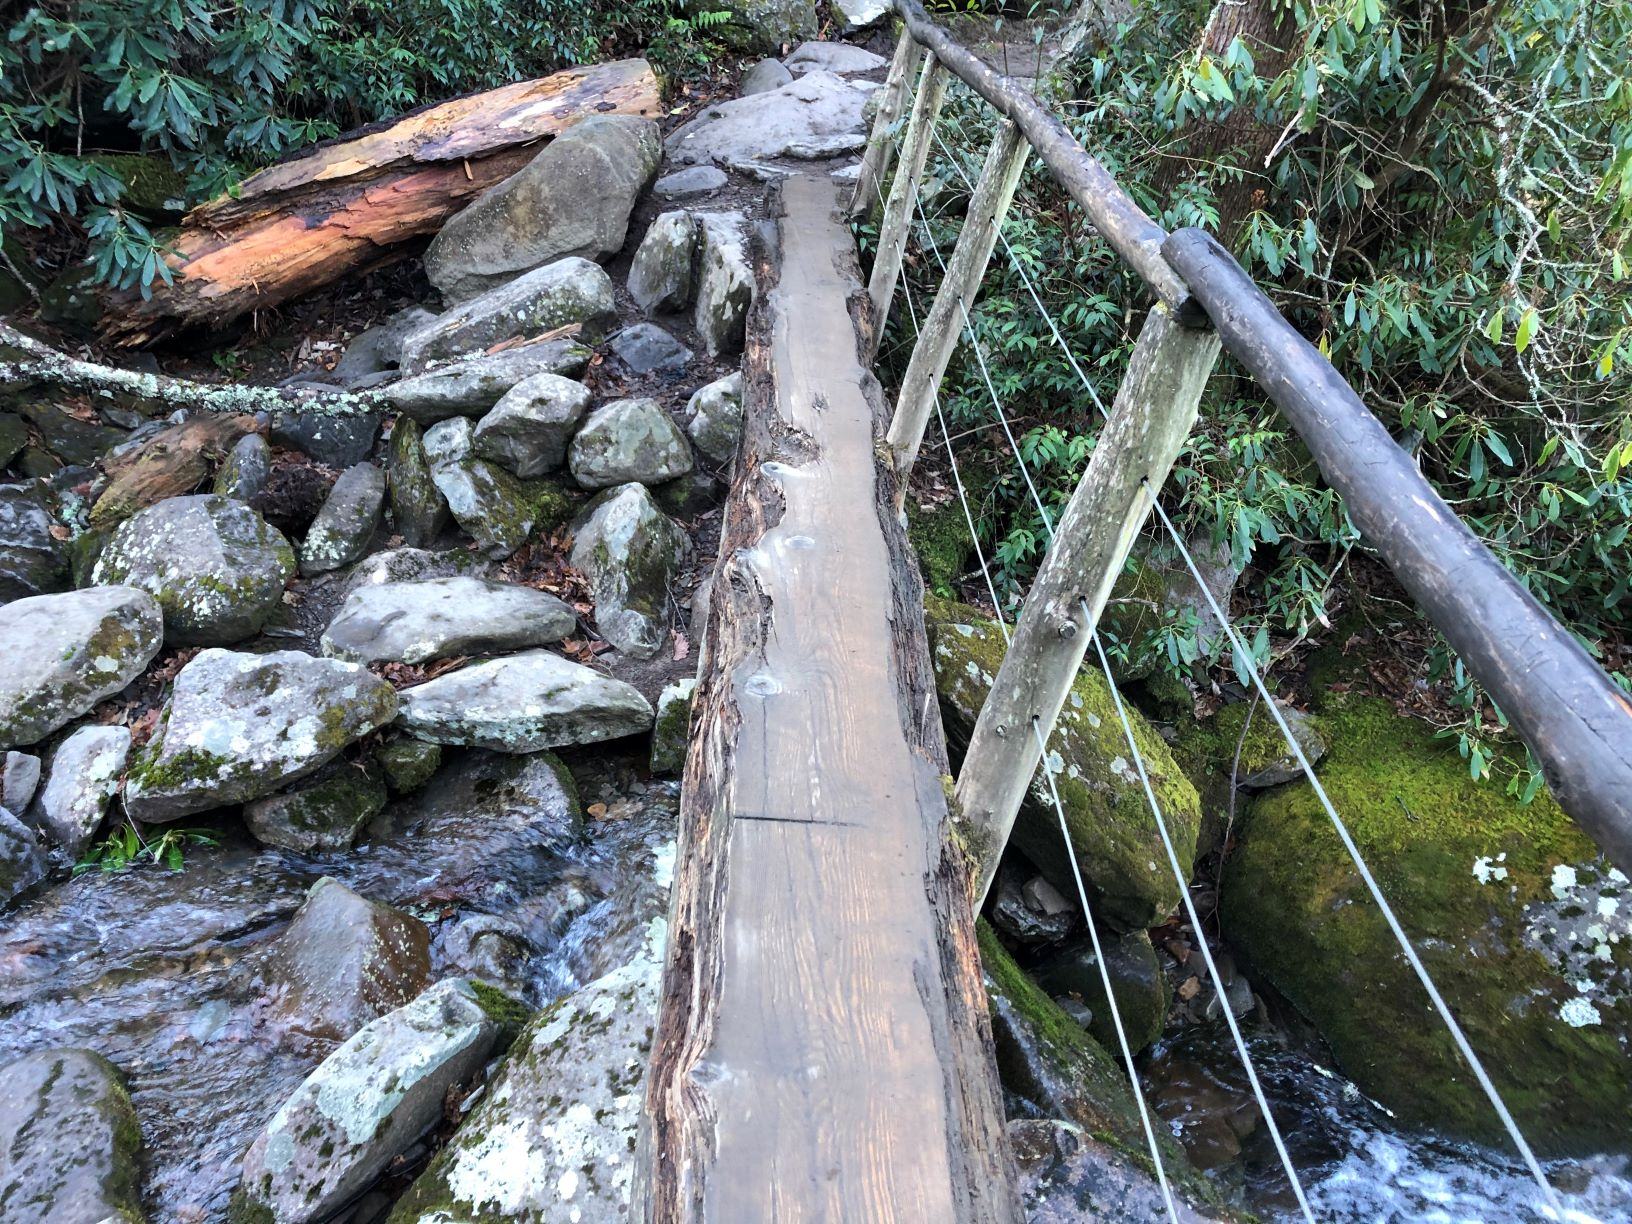 Great Smoky Mountain National Park Officials Announcing Two Temporary Trail Closures